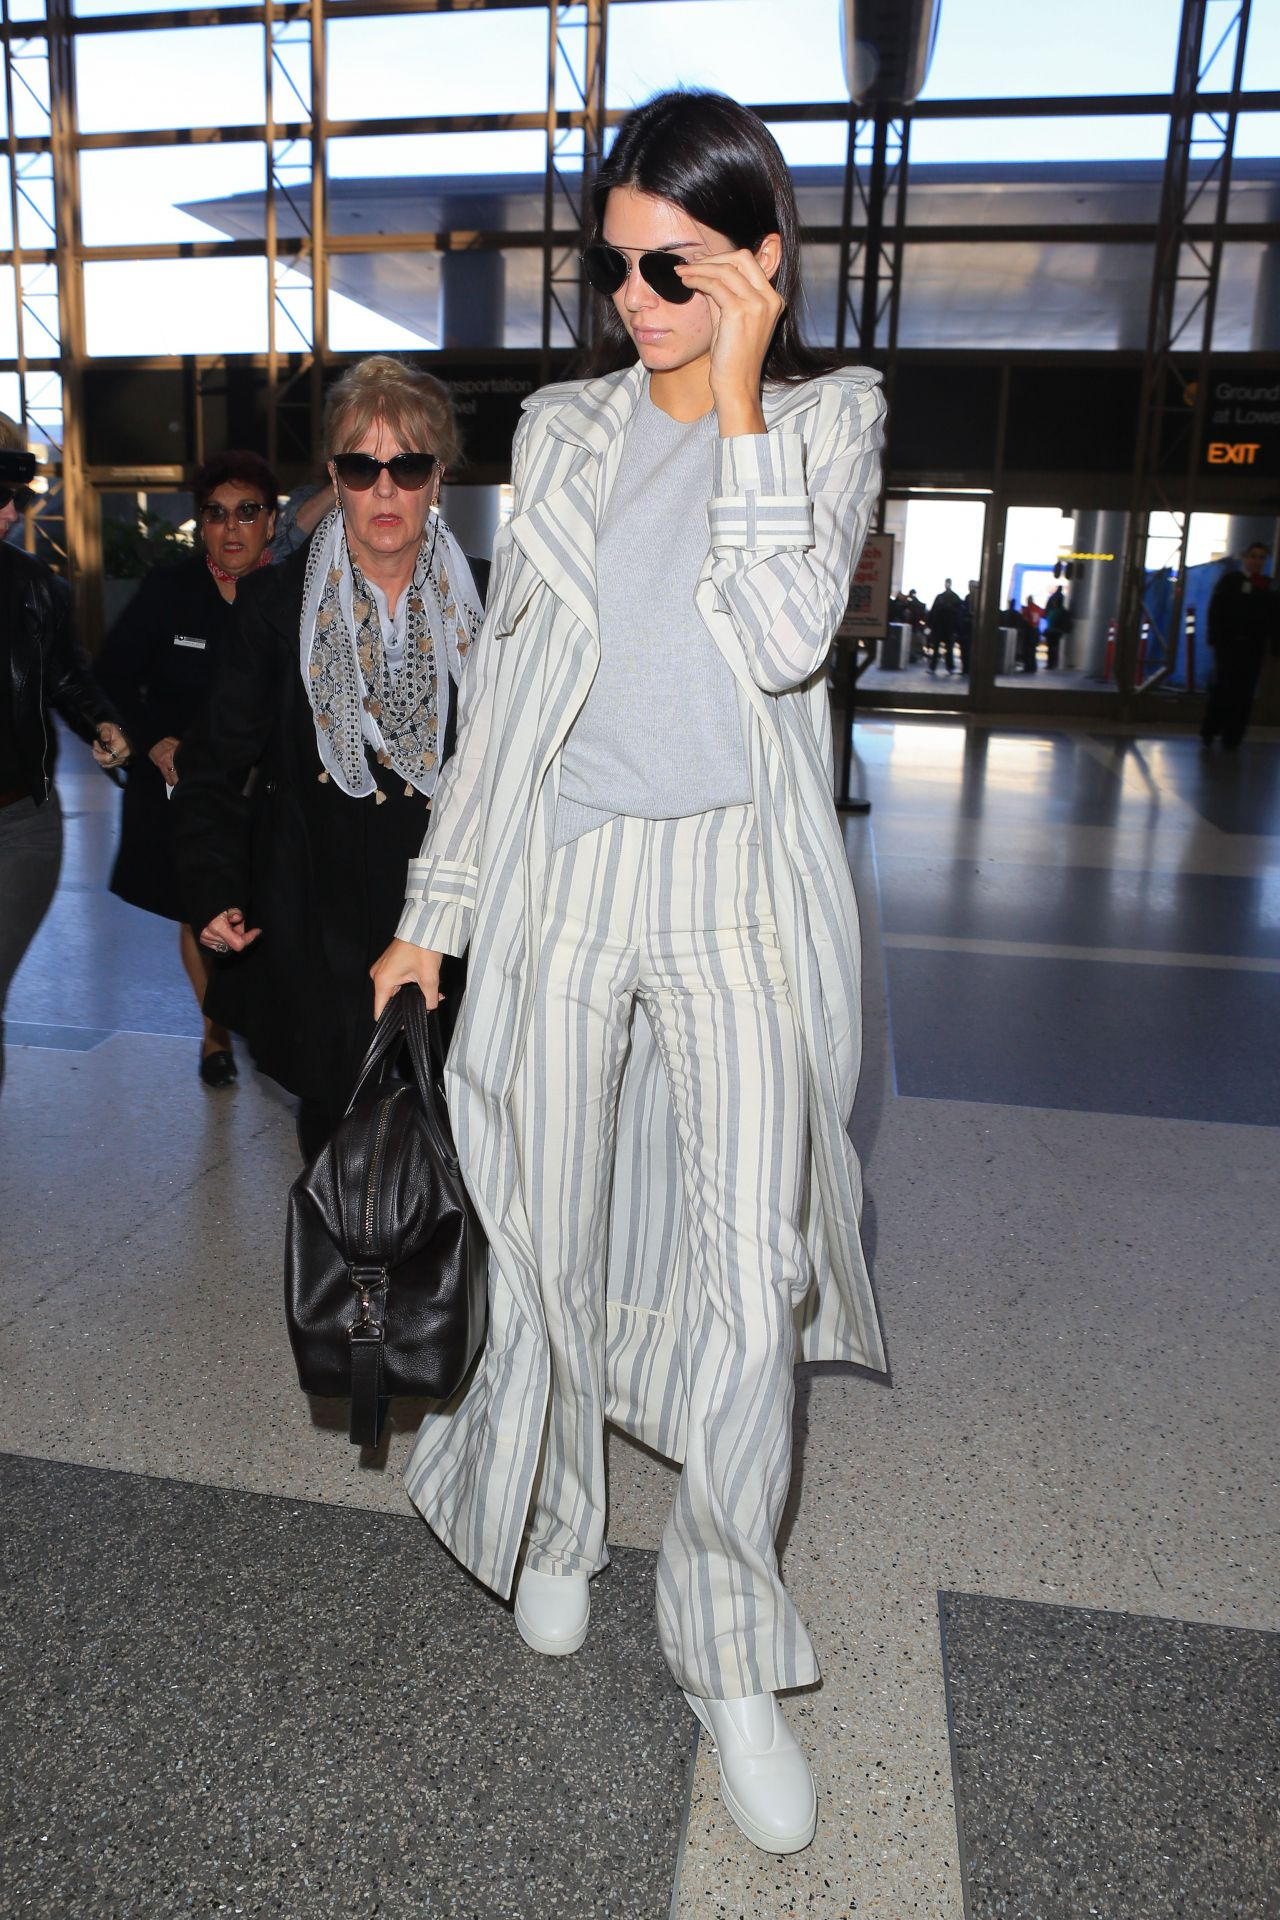 Kendall Jenner Street Fashion At Lax Airport In Los